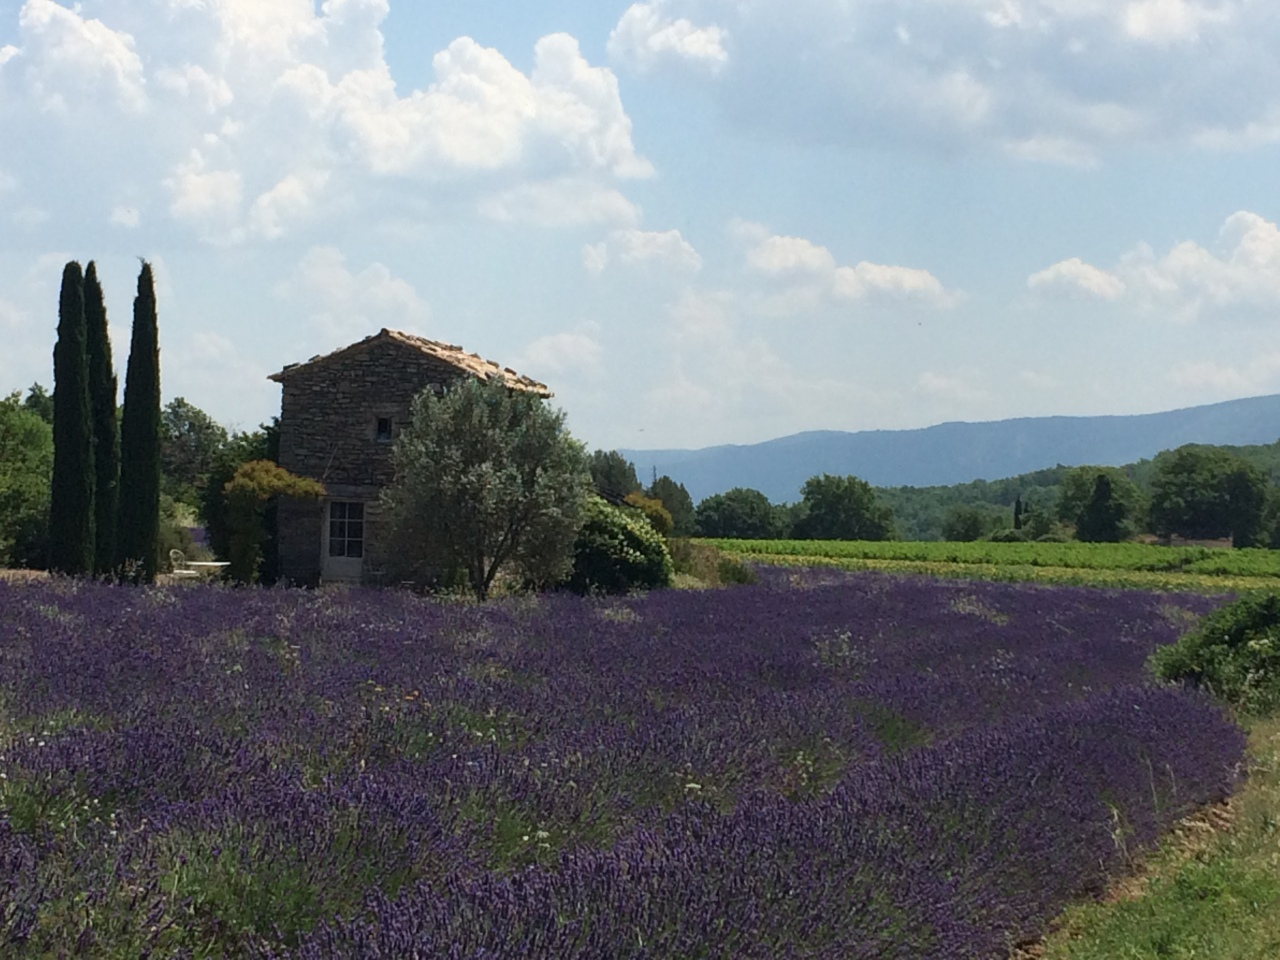 Purple Provence. Lavender Season in the Vaucluse